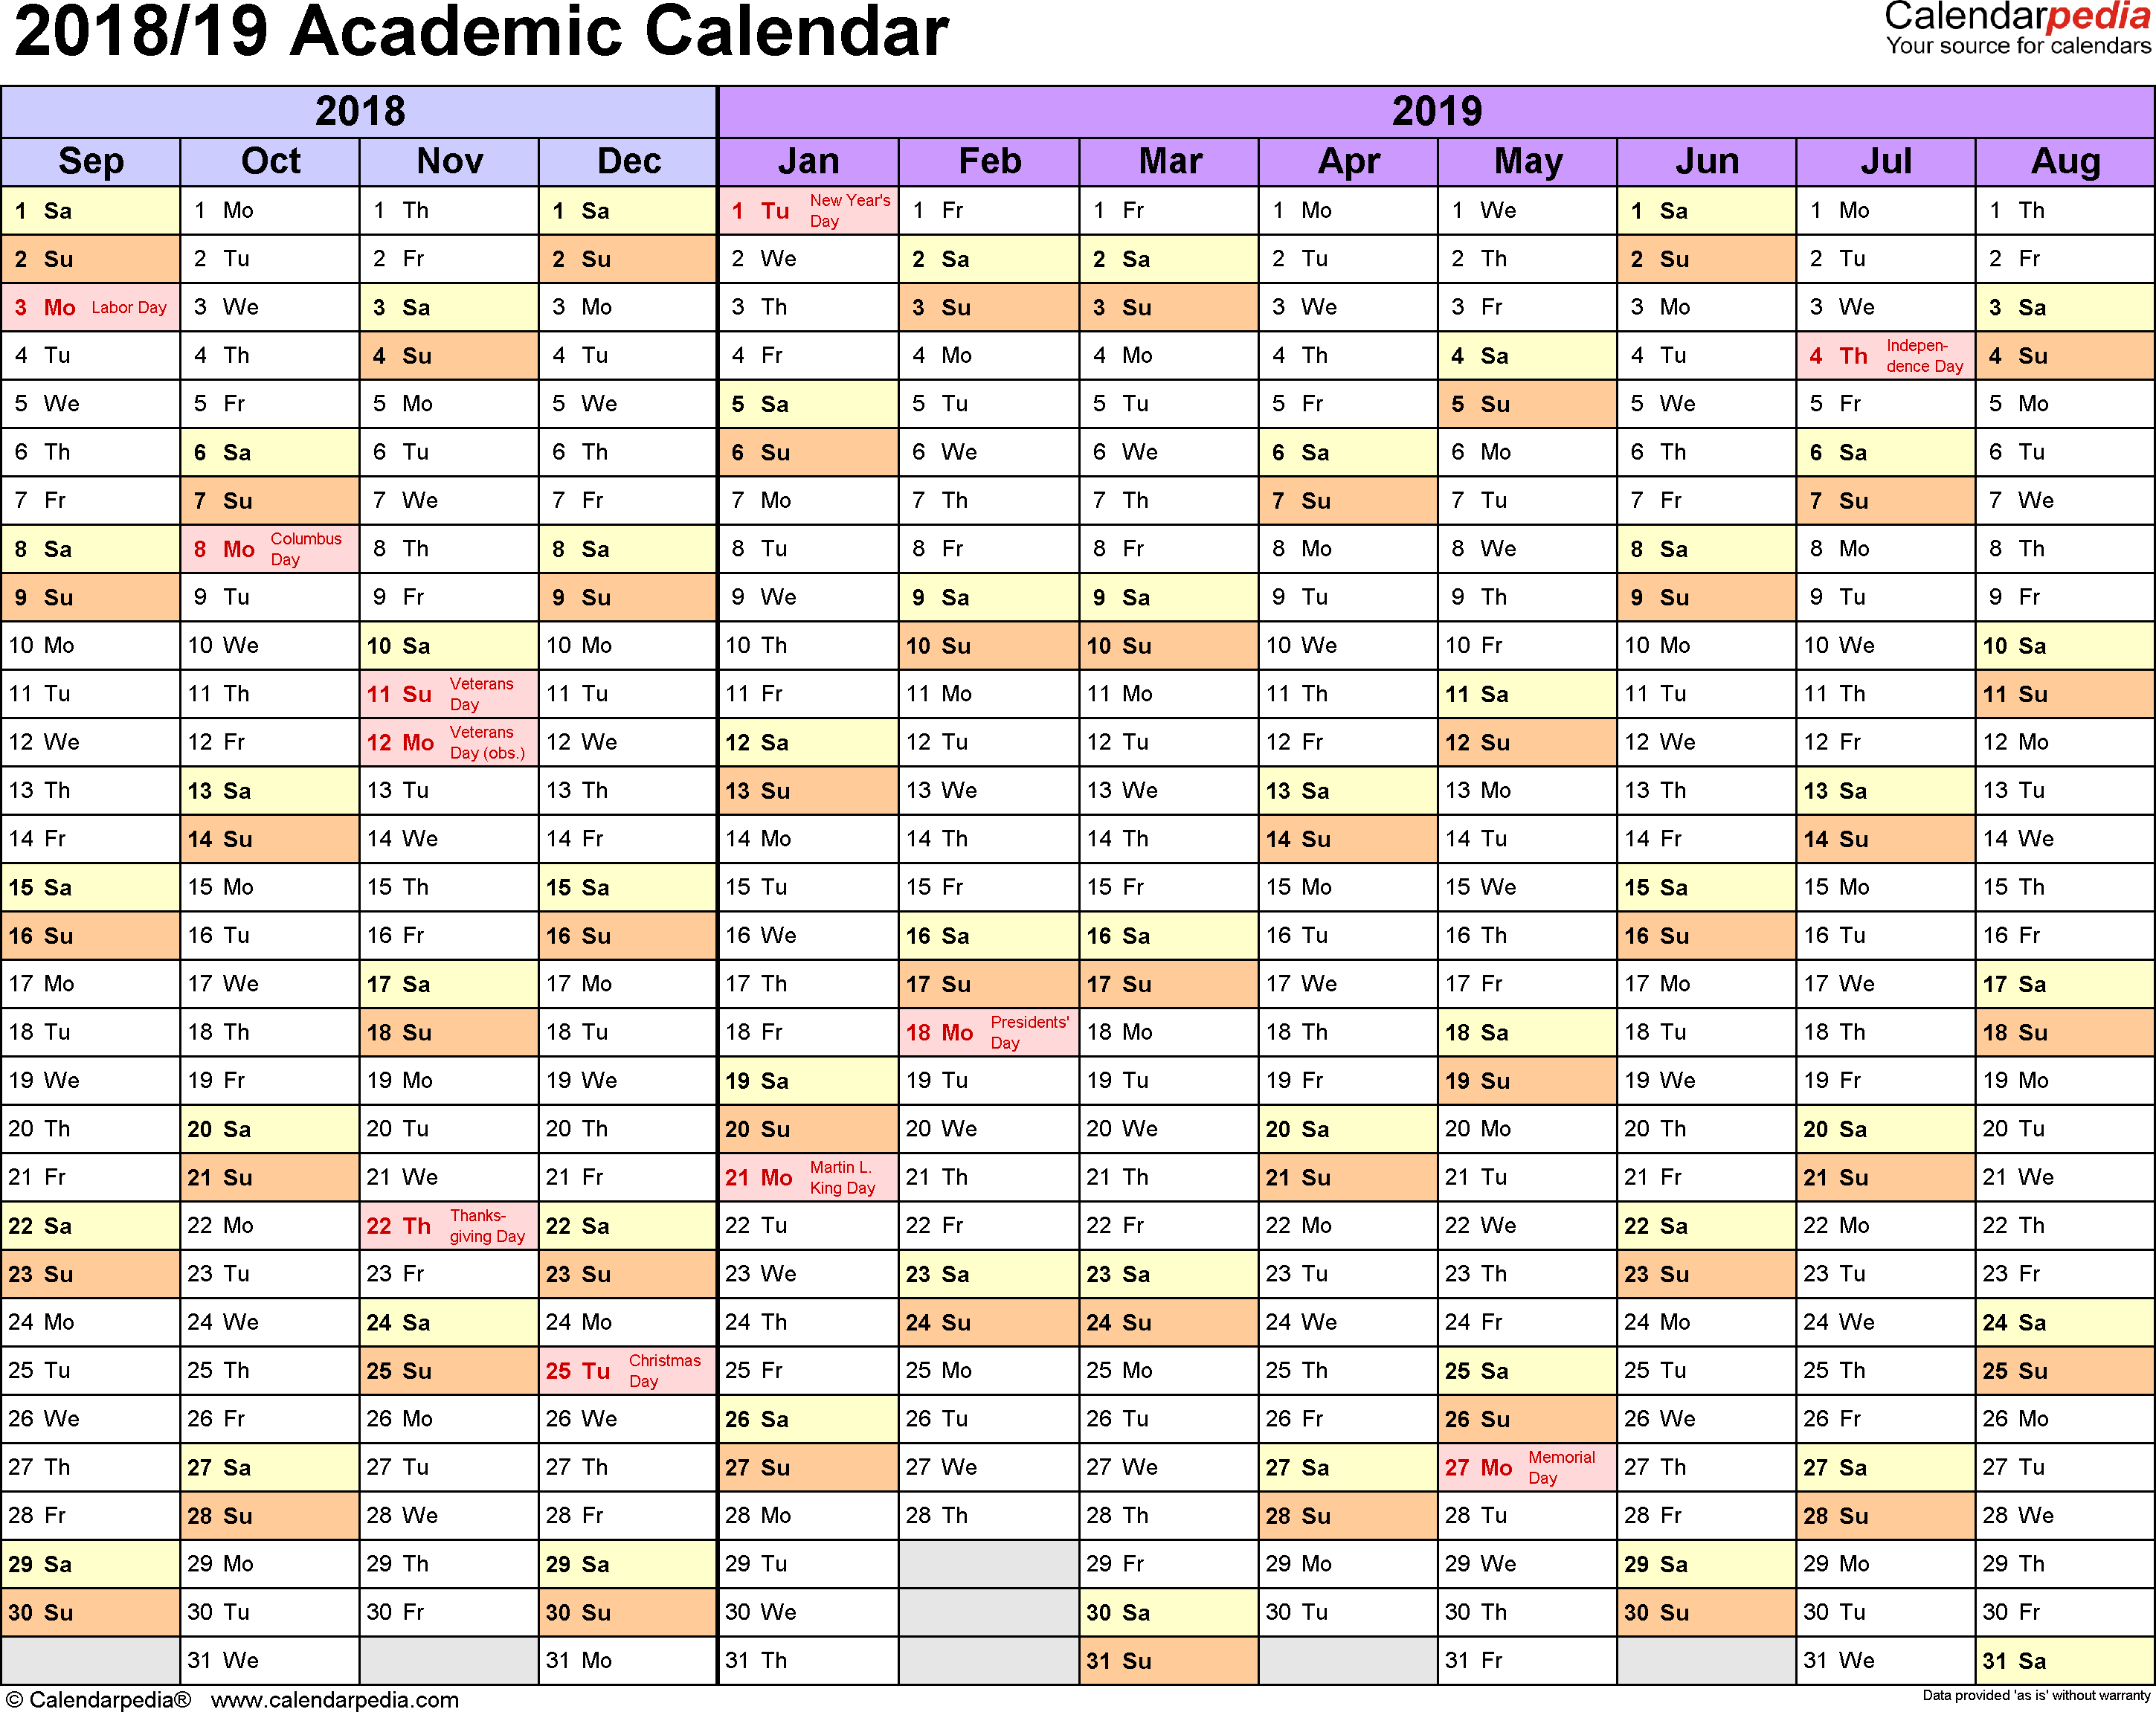 Year Calendar 2018 And 2019 With Academic Calendars Free Printable Excel Templates